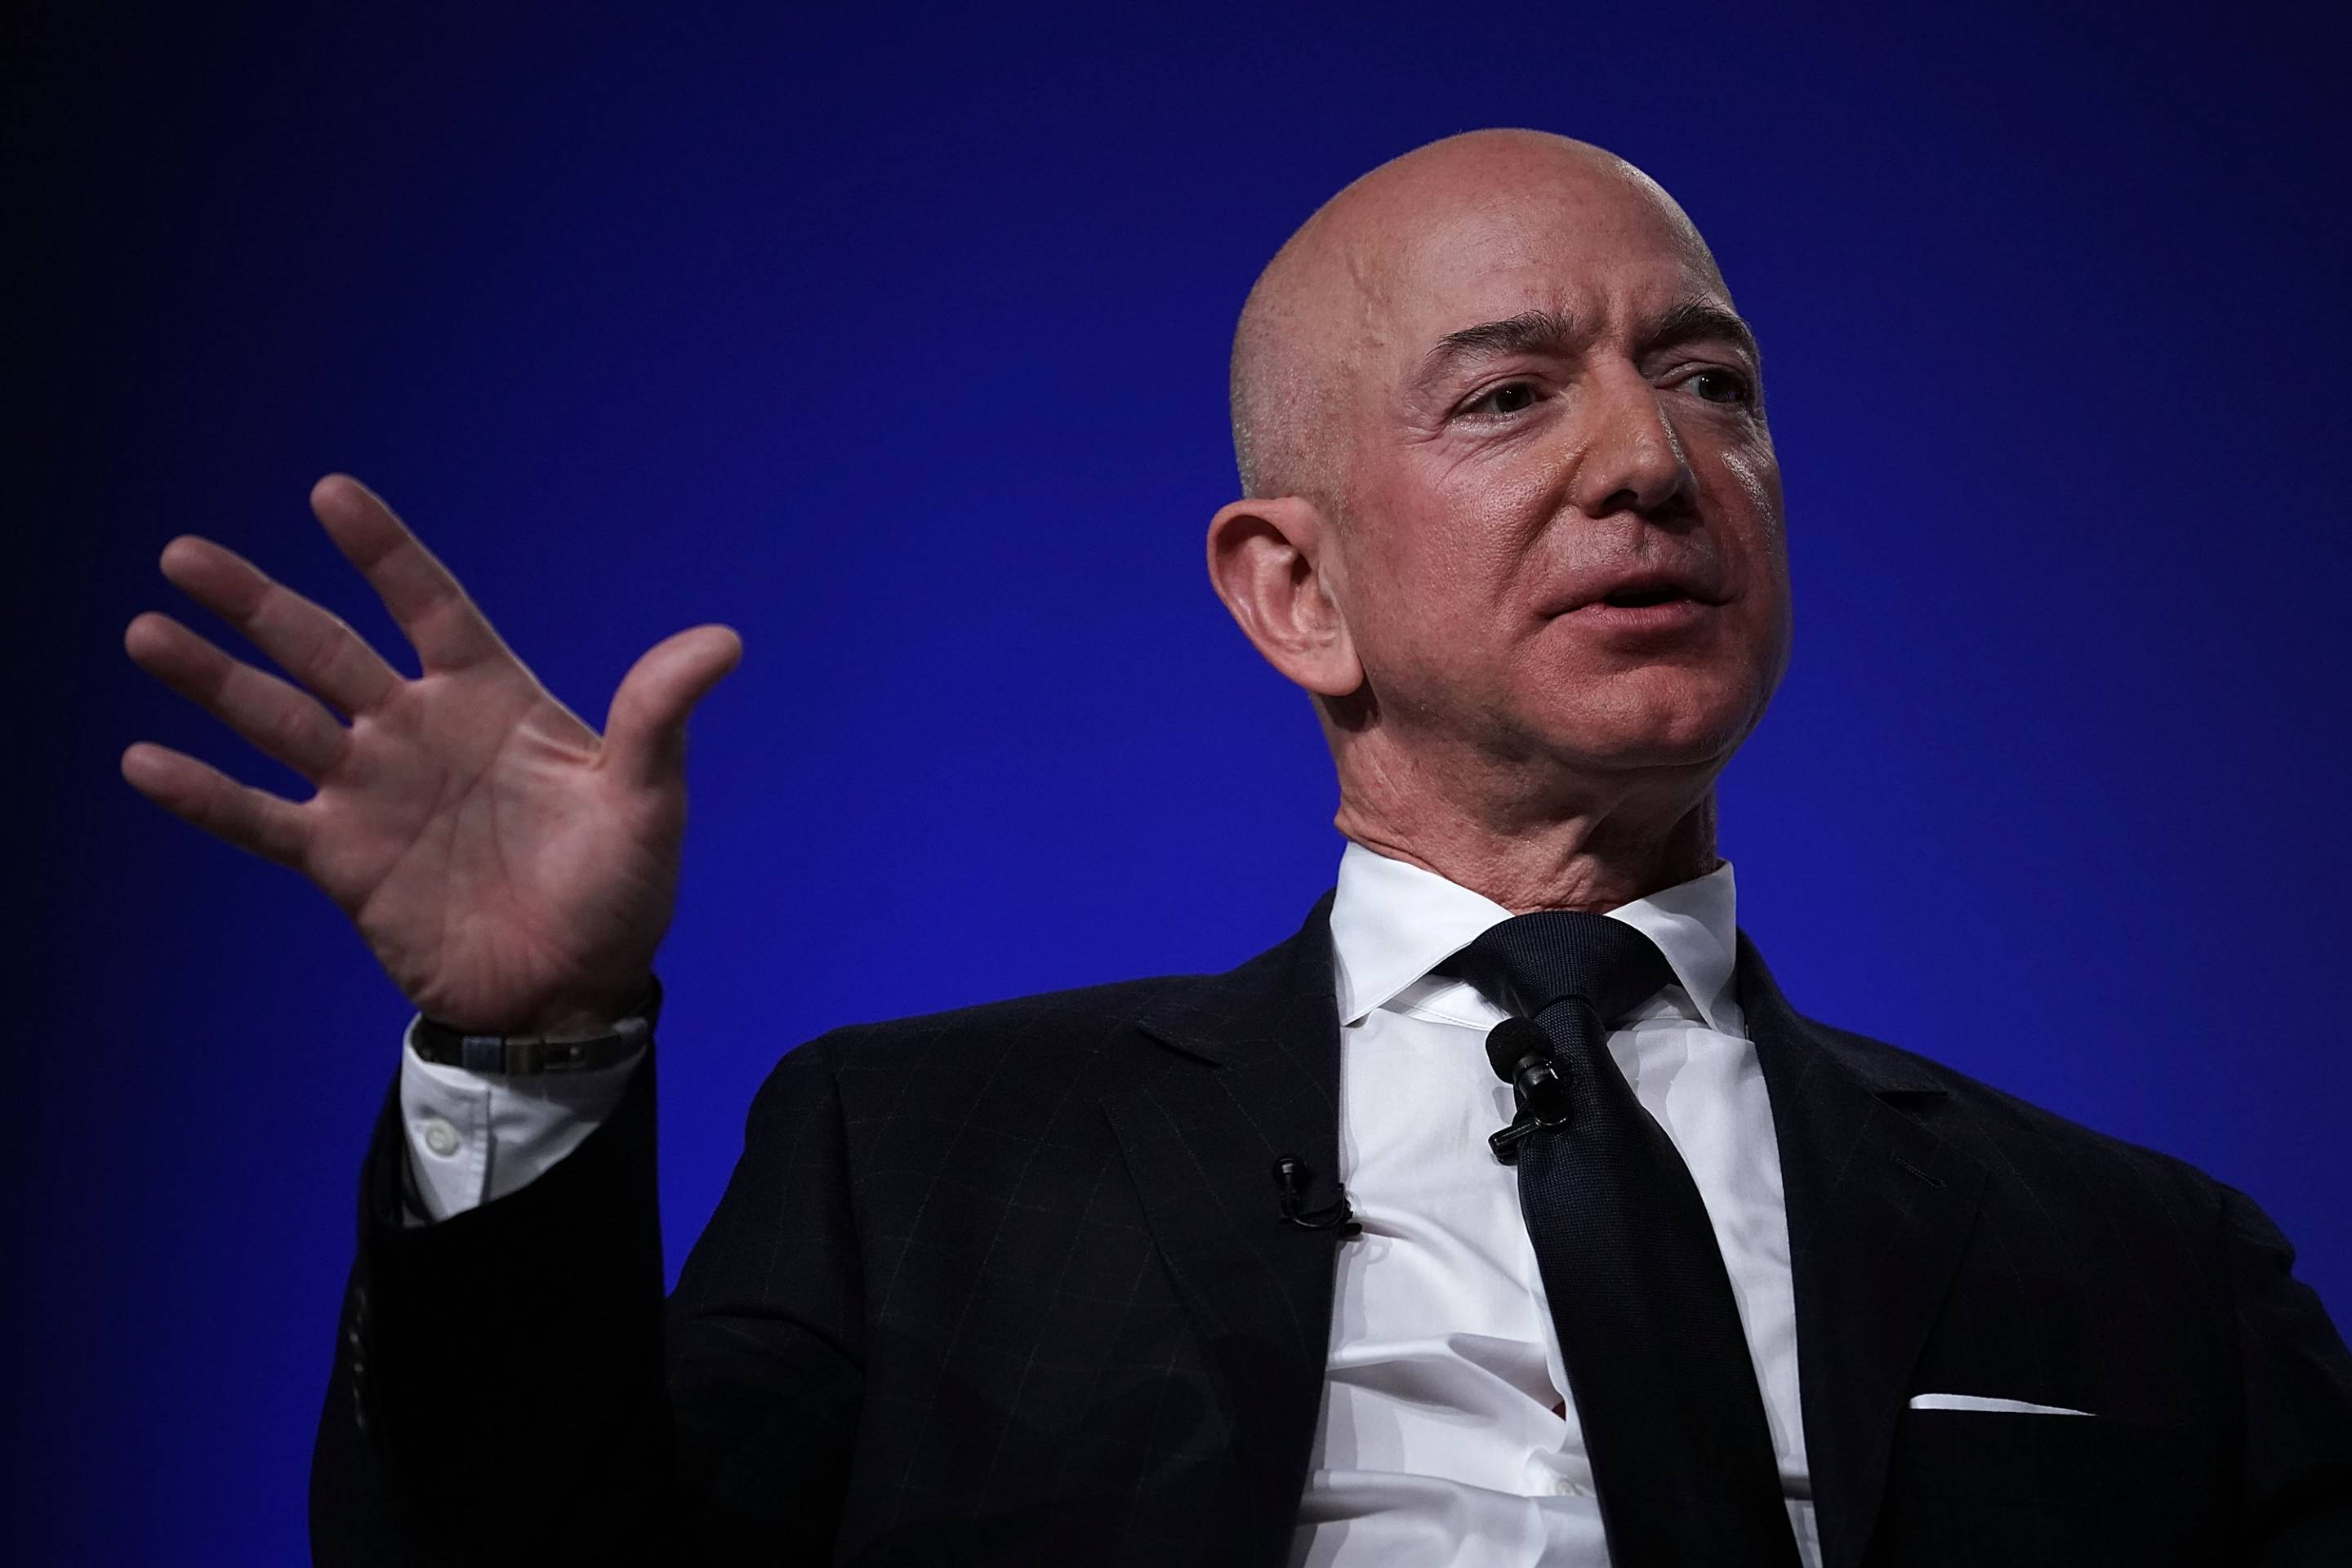 Amazon CEO Jeff Bezos speaks at an event hosted by the Air Force Association on Sept. 19, 2018 in National Harbor, Md.